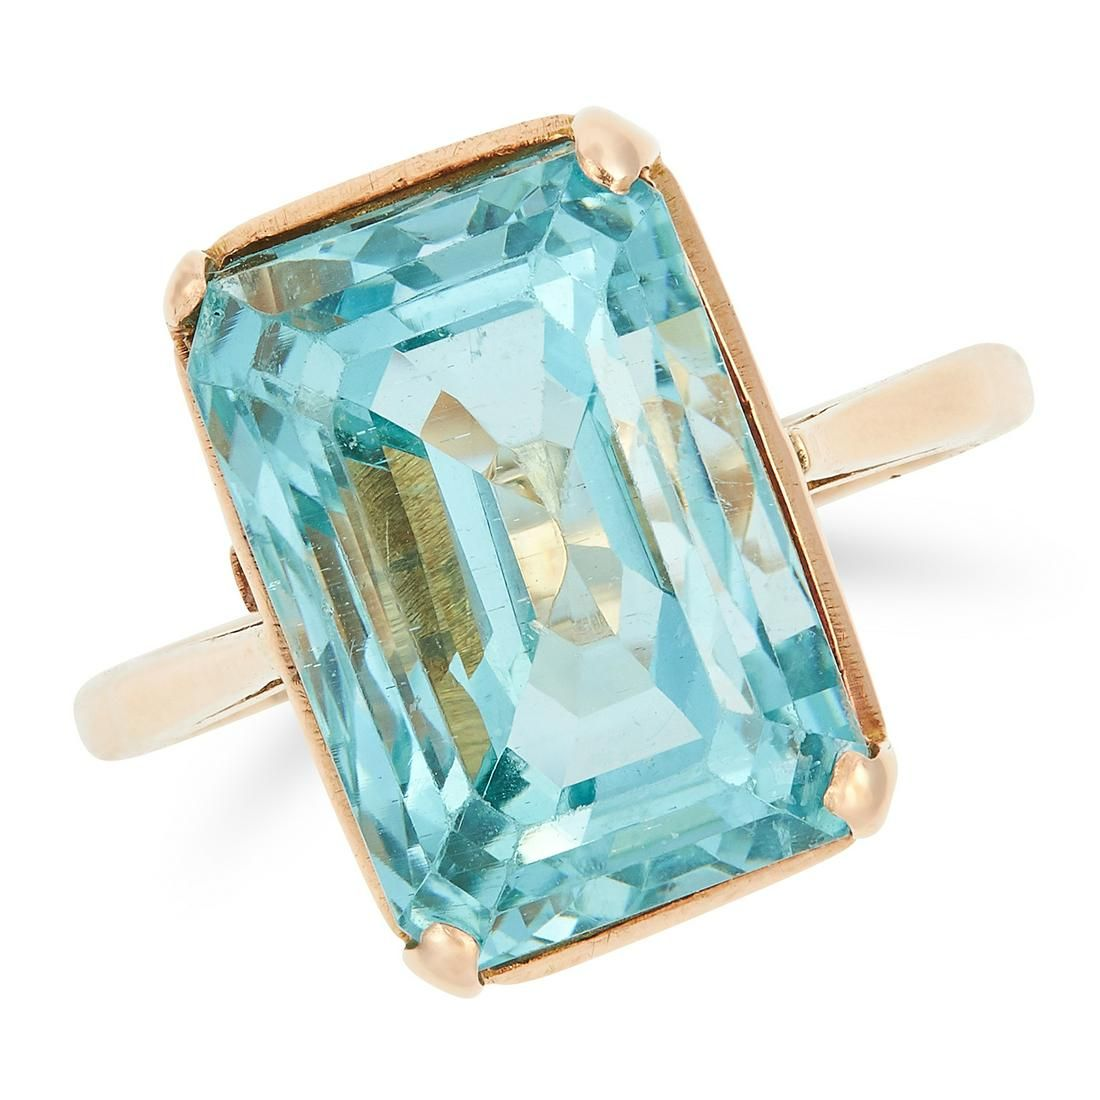 AQUAMARINE RING set with an emerald cut aquamarine of